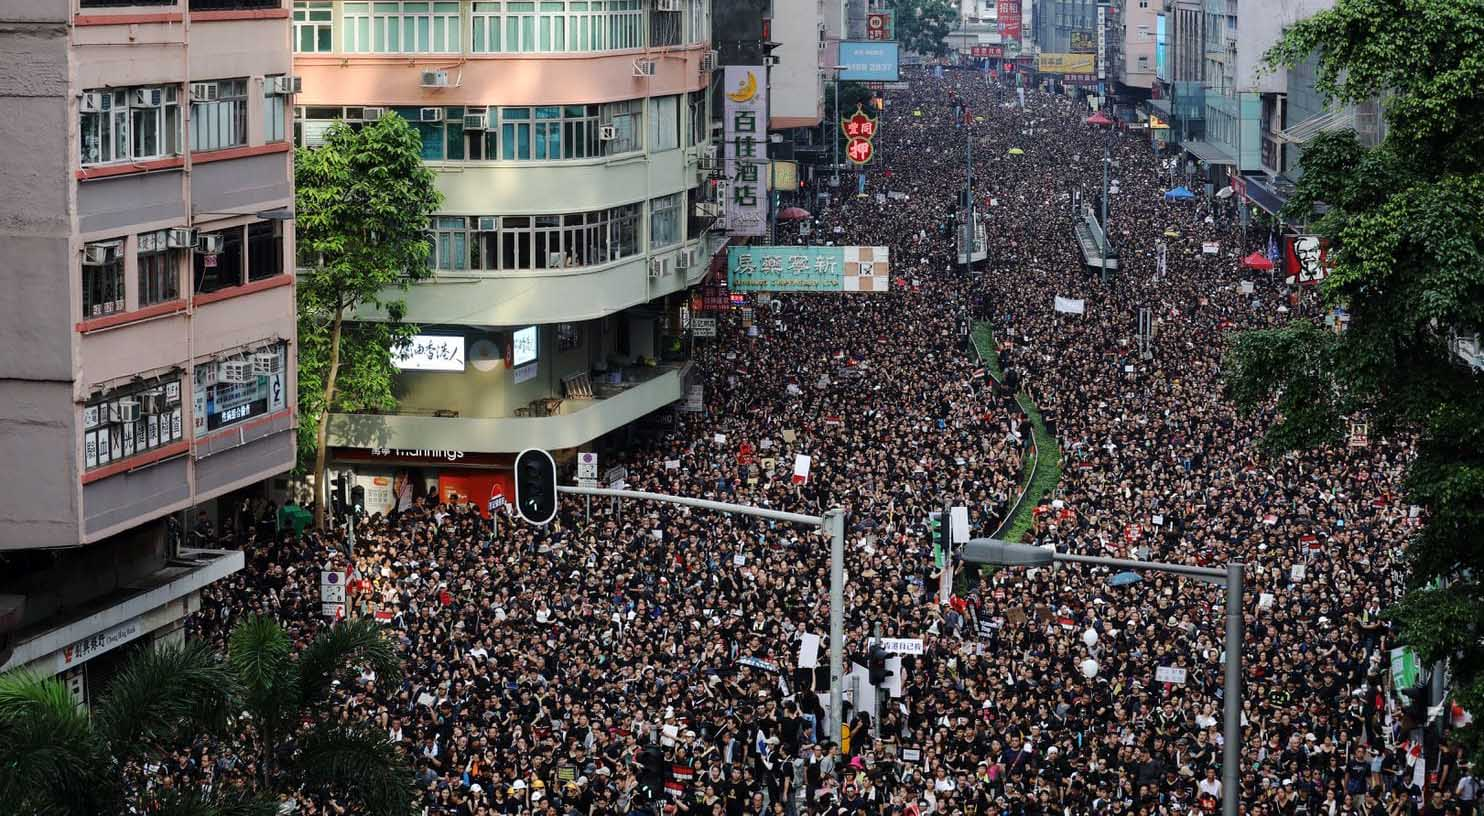 Demonstrators march Sunday in Hong Kong. (Kyle Lam/Bloomberg)